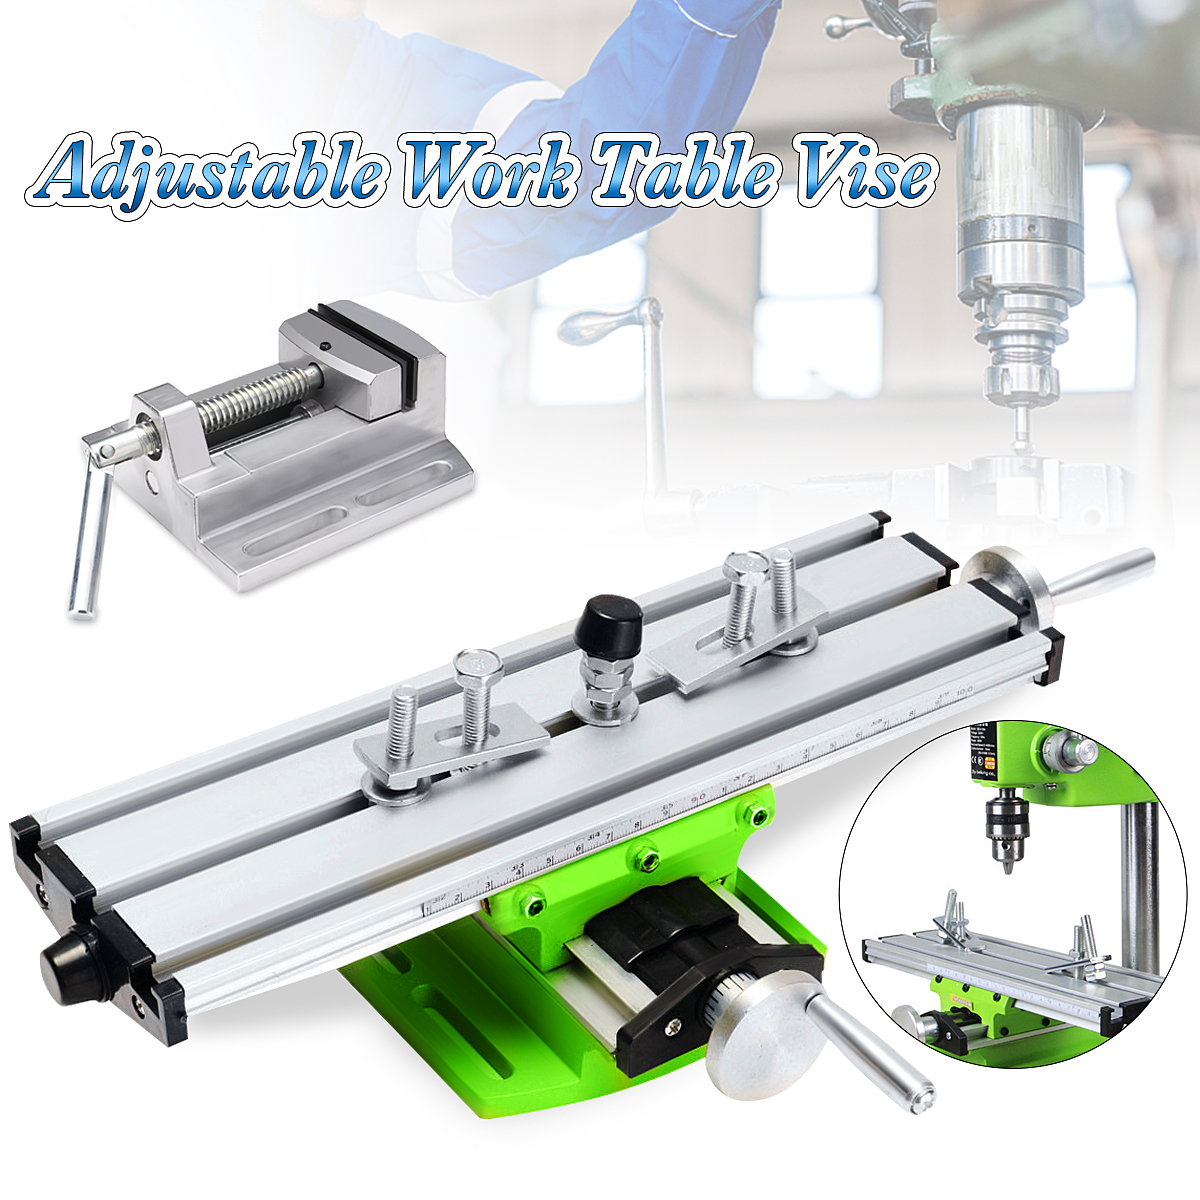 Multifunction 2 Axis Milling Compound Working Table Cross Sliding Bench Drill Vise Fixture DIY Adjustment WorktableMultifunction 2 Axis Milling Compound Working Table Cross Sliding Bench Drill Vise Fixture DIY Adjustment Worktable